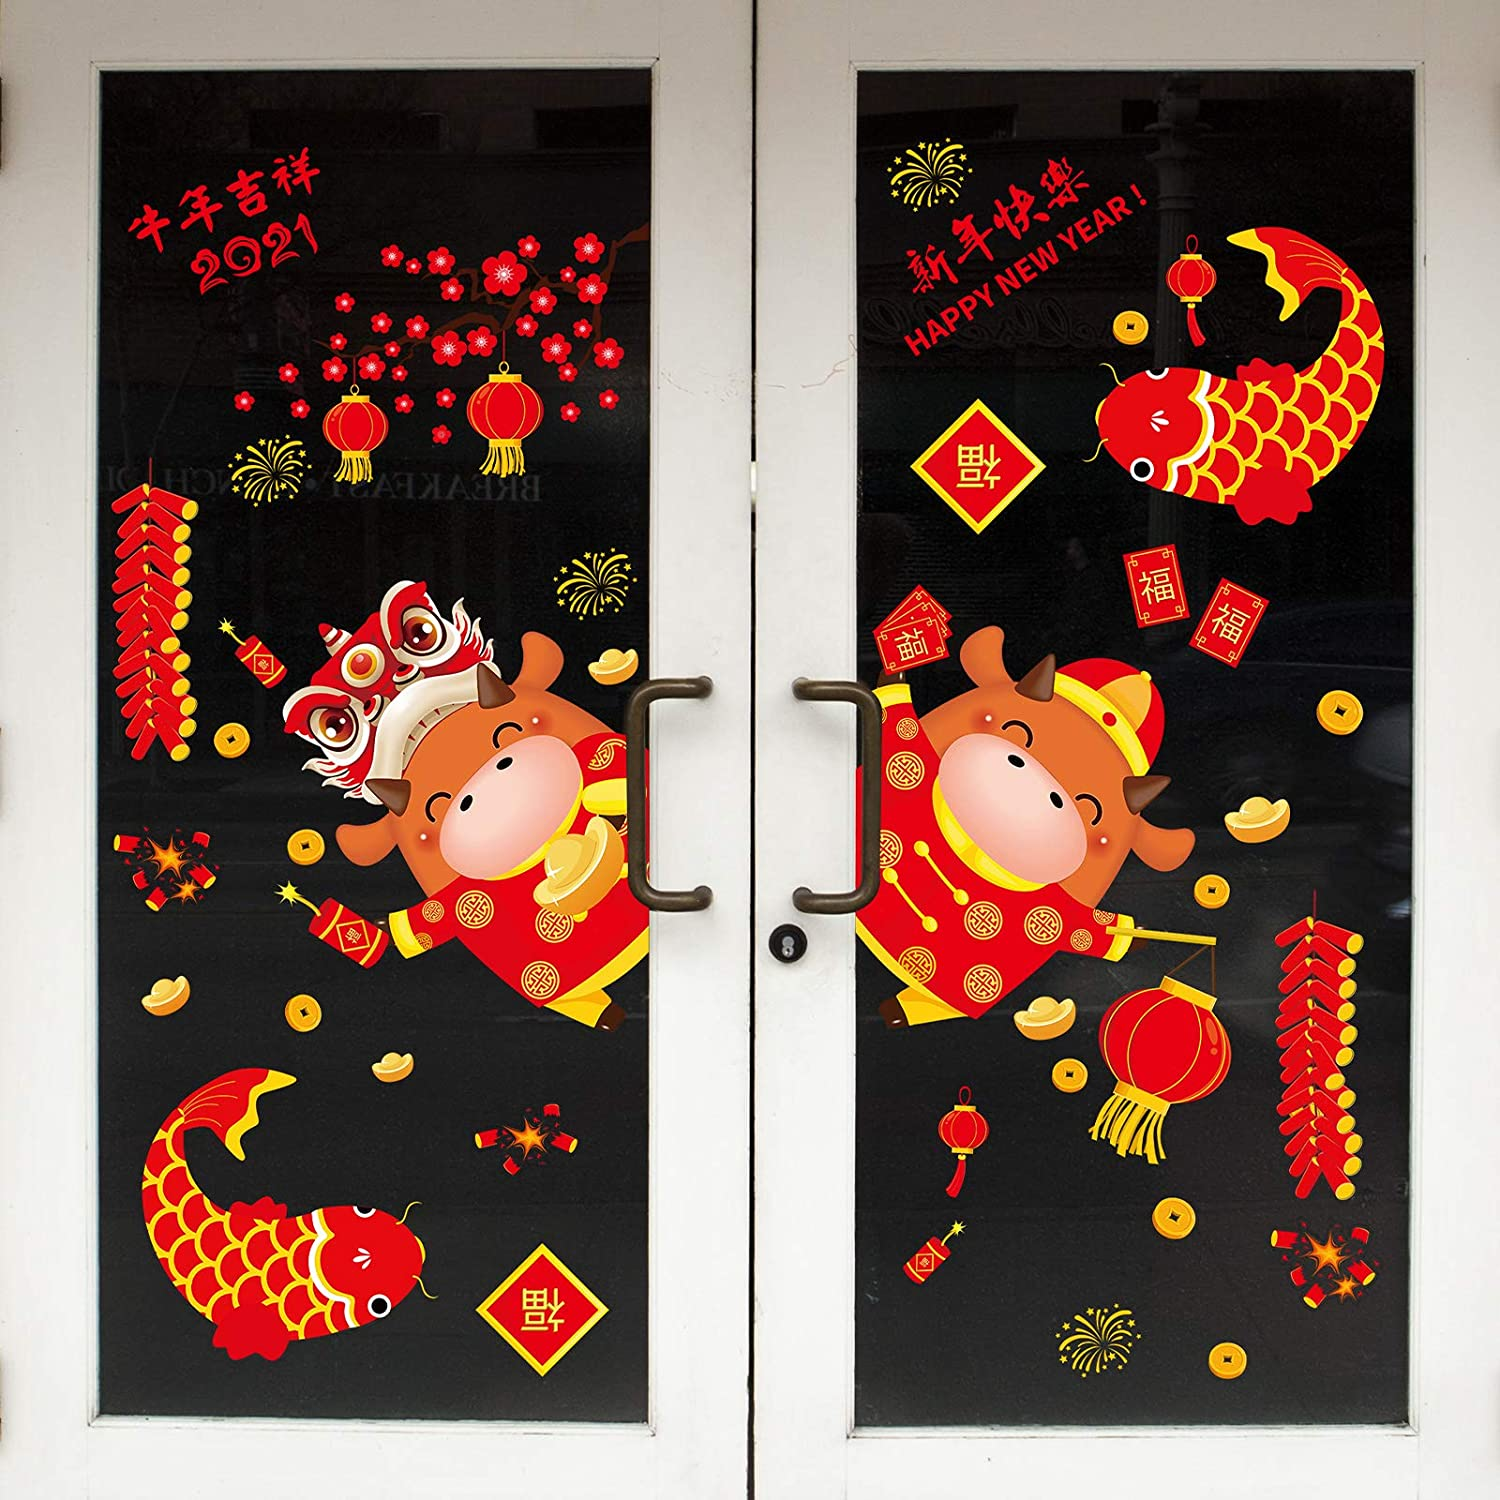 50 Pieces Chinese New Year Window Clings, 2021 Spring Festival Decorations Window Sticker, Ox Year Window Decals Self-Adhesive Removable Wall Sticker for Office Home Restaurant Store Party Supplies